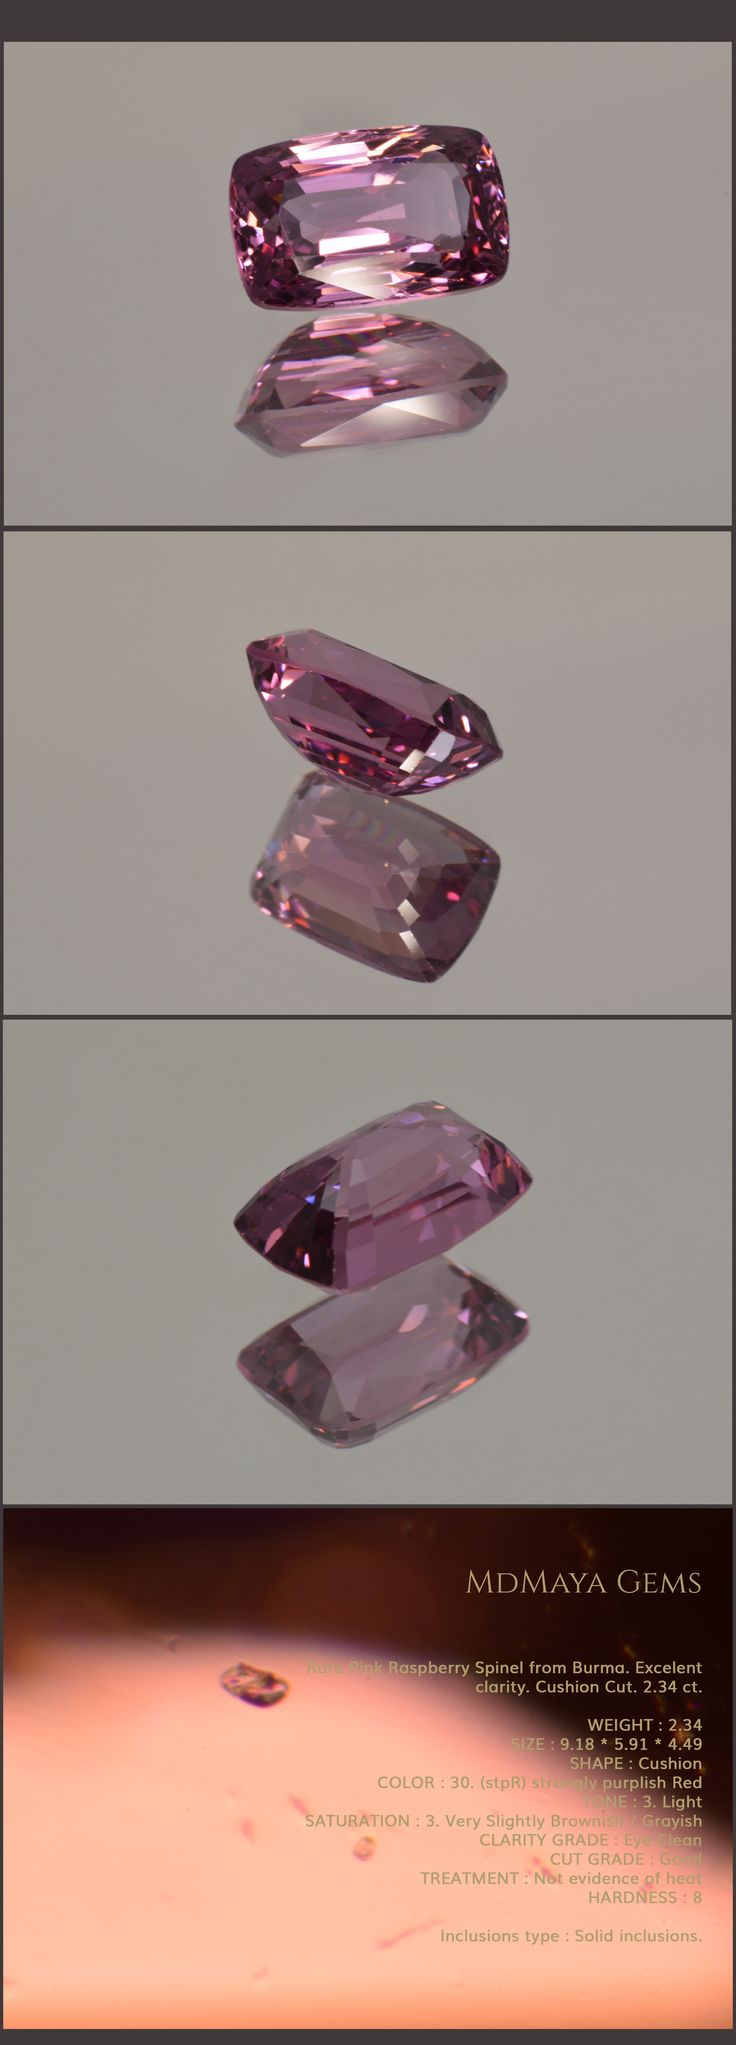 Rare Pink Raspberry Spinel from Burma. Excelent clarity. Cushion Cut. 2.34 ct.  Loose Pink Spinel Gemstones for sale MdMaya Gems